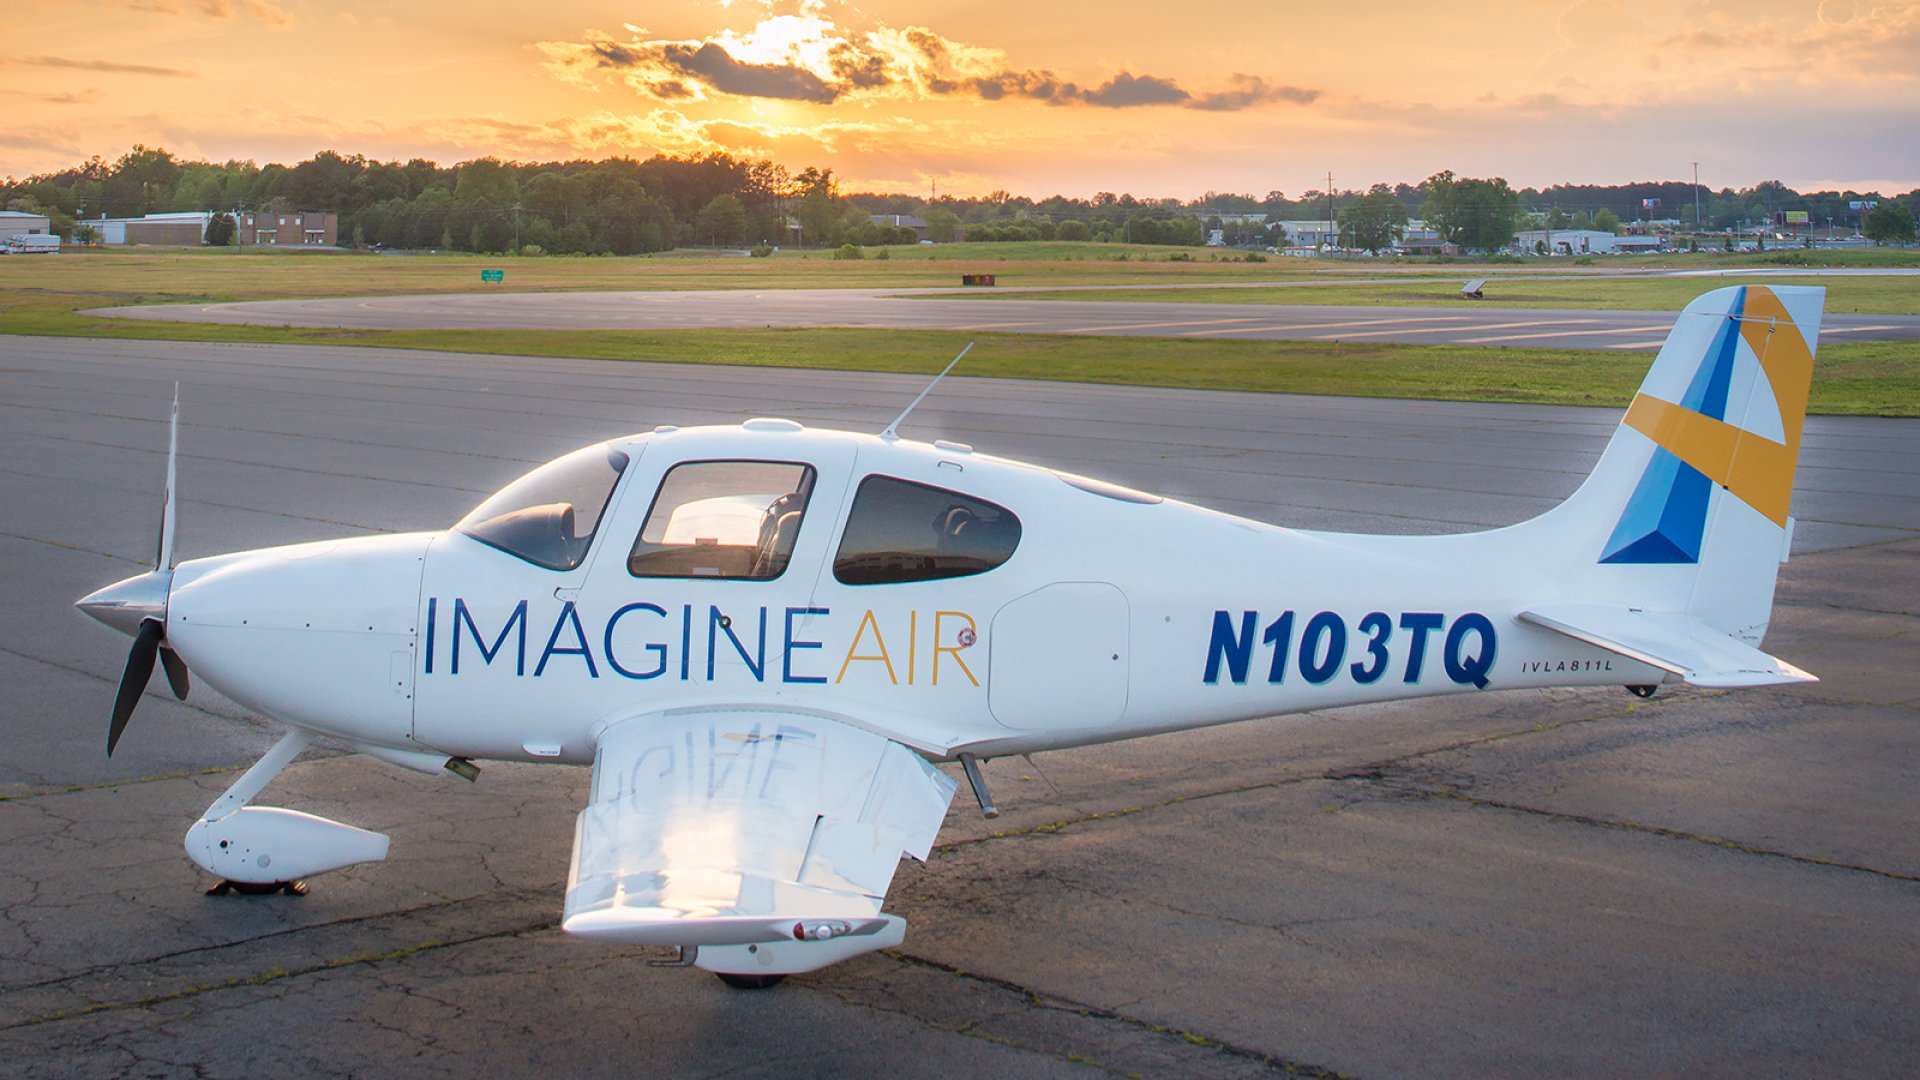 A Cirrus SR22-GTS, ImagineAir's aircraft of choice, sits on a tarmac at the company's home base in Georgia.